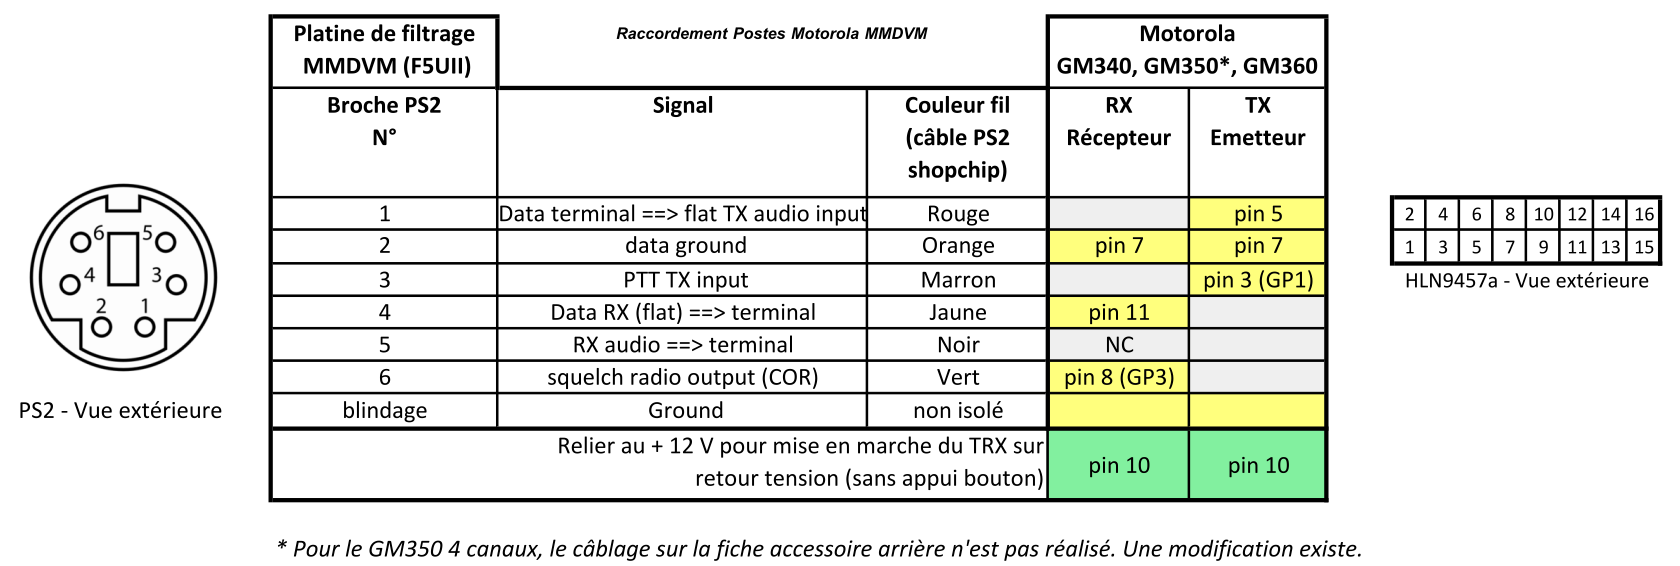 Setup Of Mmdvm And Tuning With Mmdvmcal Sdr Key Wiringpi Set Mode Brochage Des Prises Ps2 Vers Le Connecteur Motorola Hln9457a